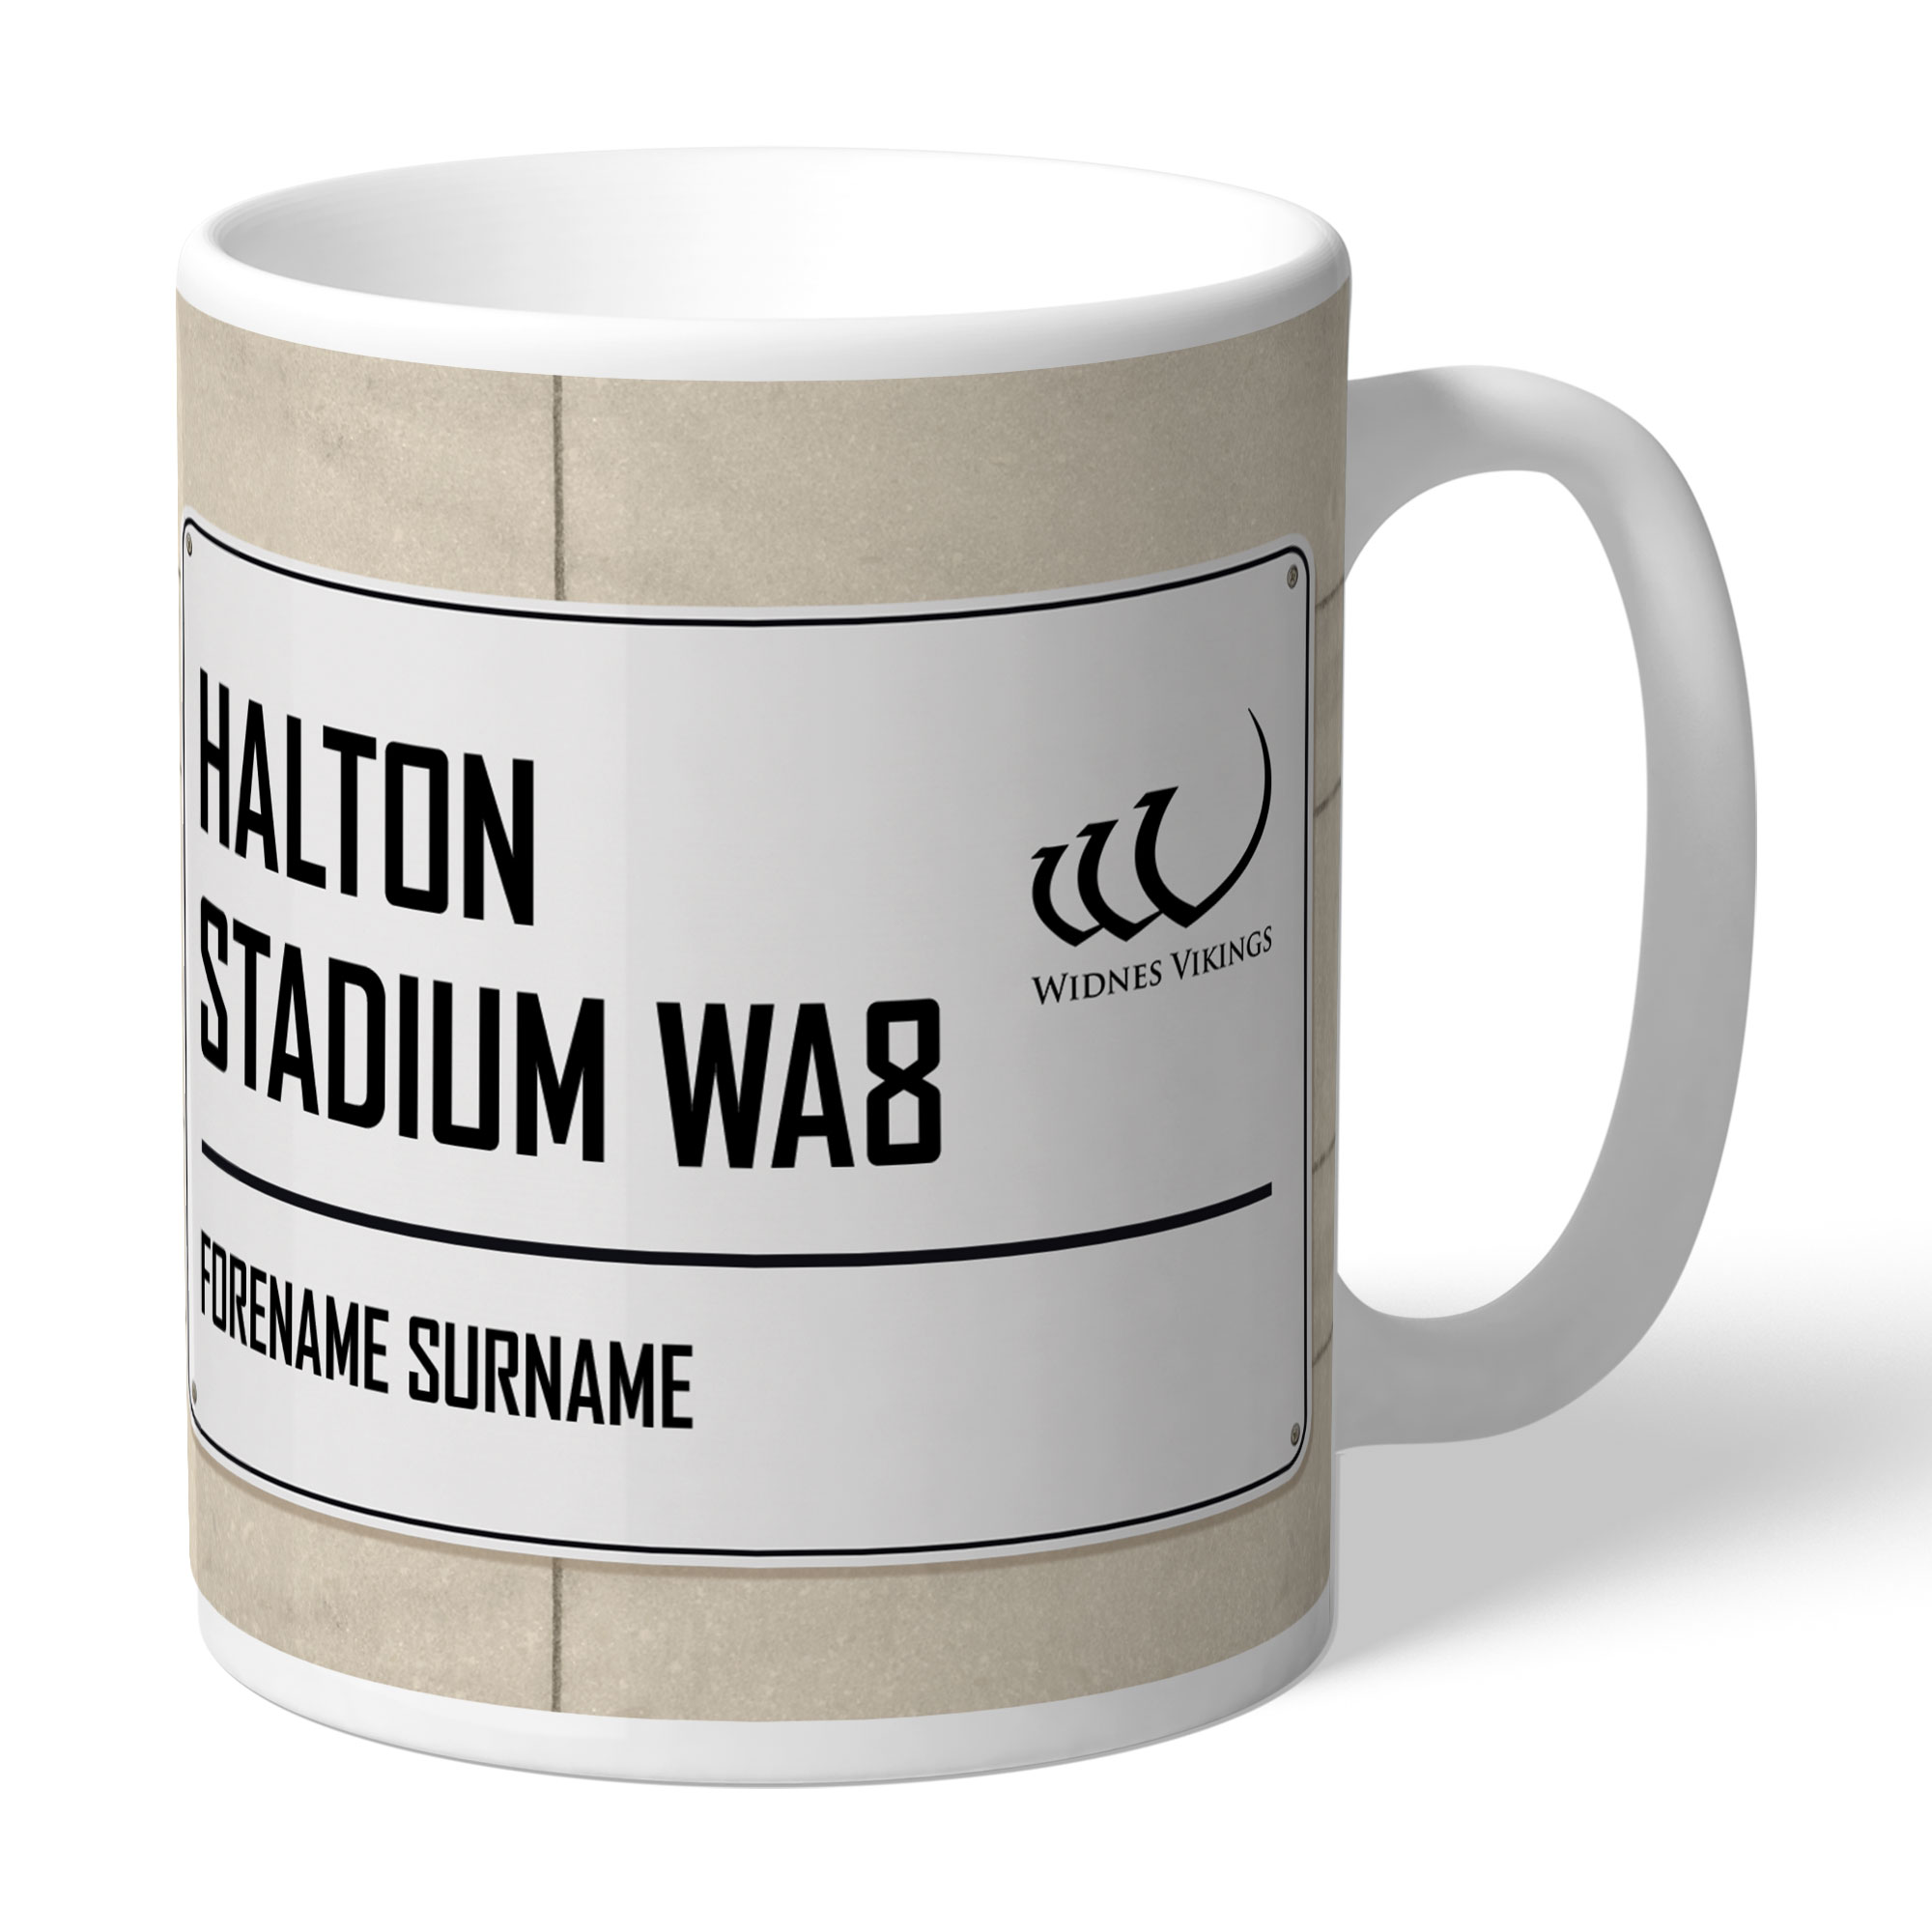 Widnes Vikings Street Sign Mug